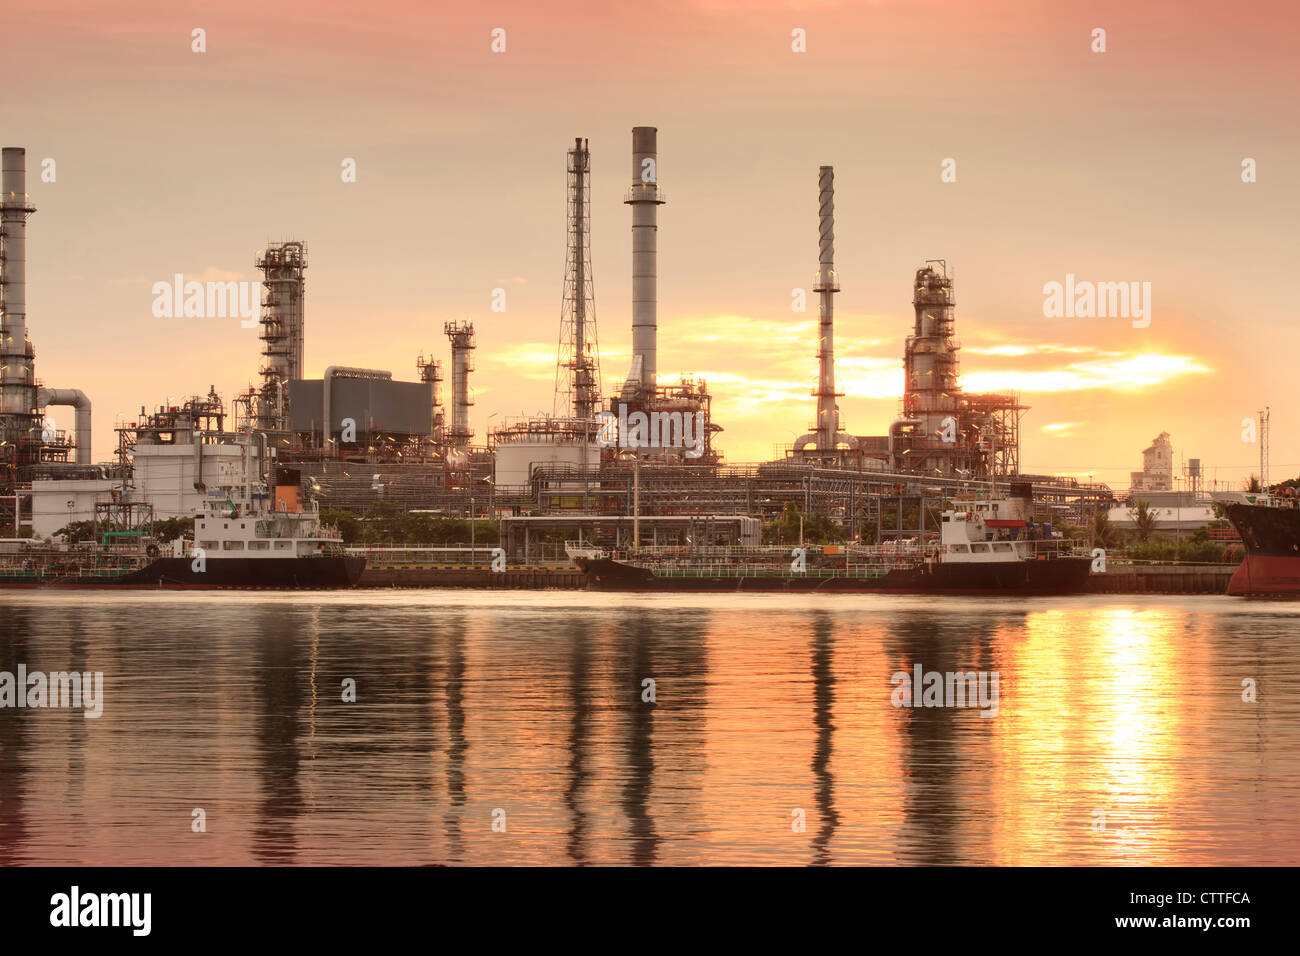 Landscape of river and oil refinery factory between sun rise time in Chao praya river, Bangkok, Thailand. - Stock Image